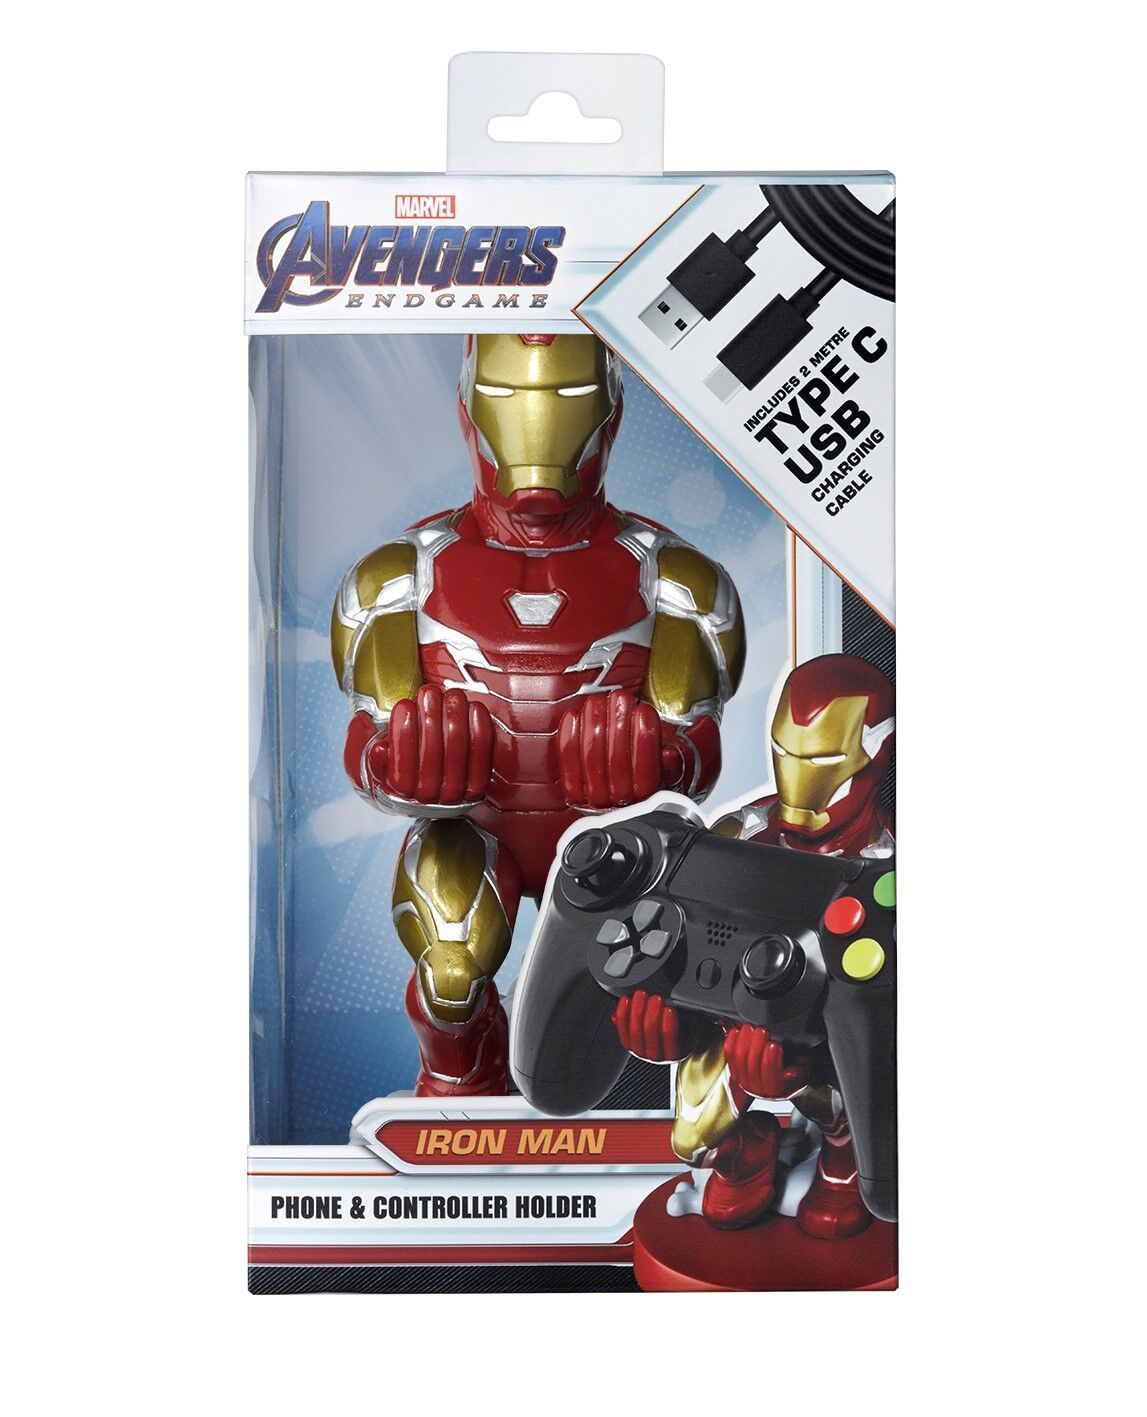 Cable Guy Controller Holder - Ironman for PS4 image